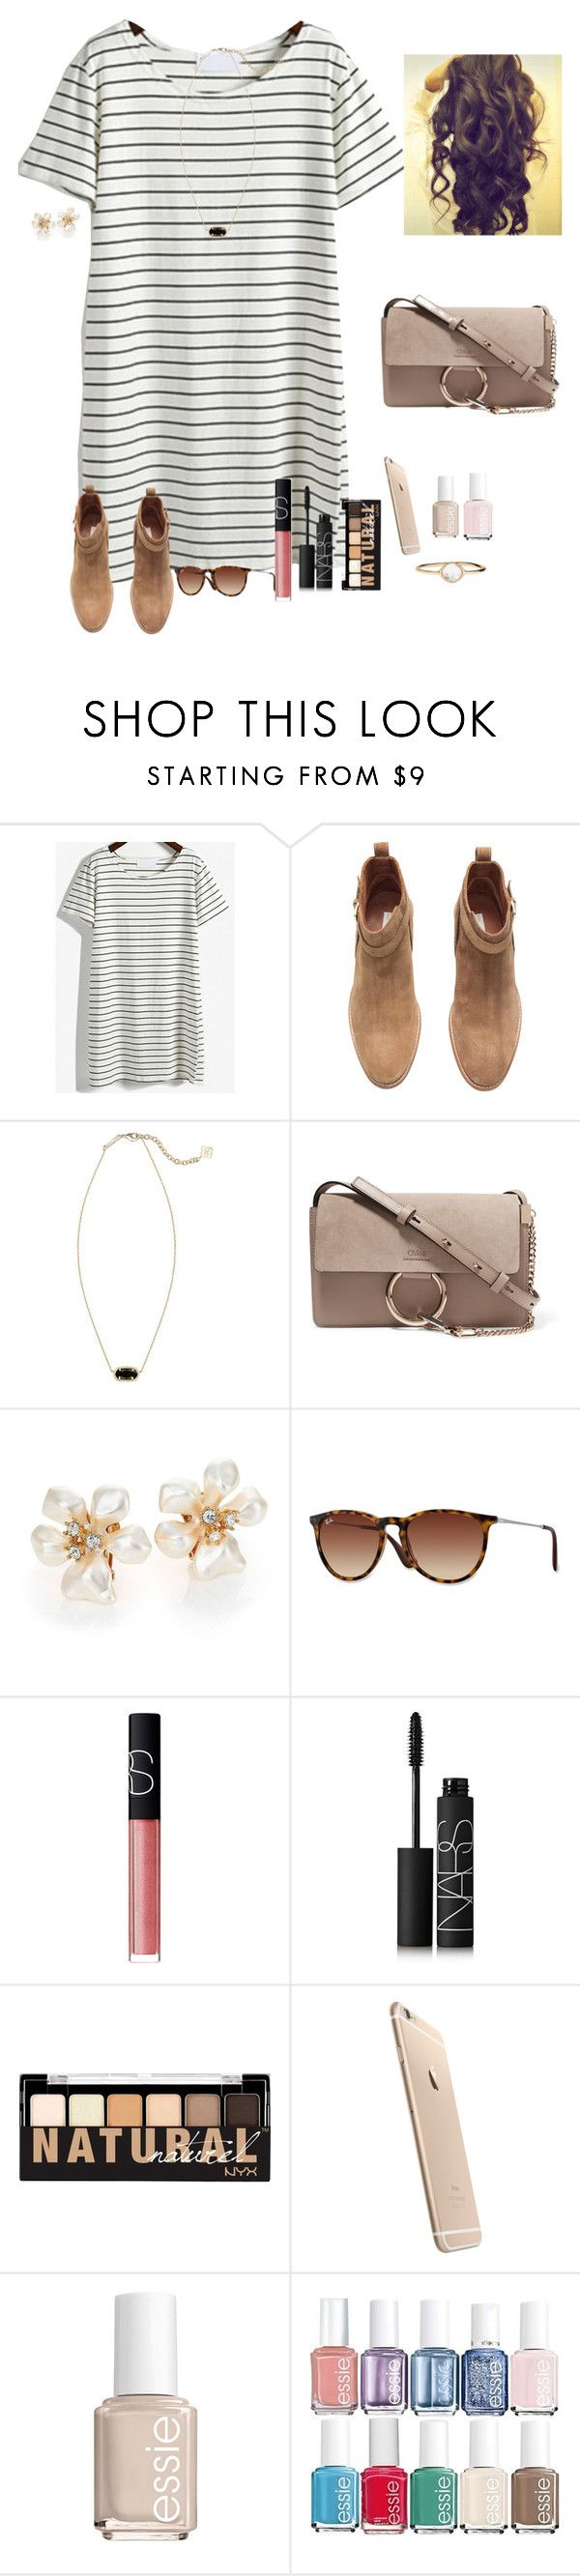 """""""Be on for God"""" by raquate1232 ❤ liked on Polyvore featuring H&M, Kendra Scott, Chloé, Kenneth Jay Lane, Ray-Ban, NARS Cosmetics, NYX, Essie and Accessorize"""